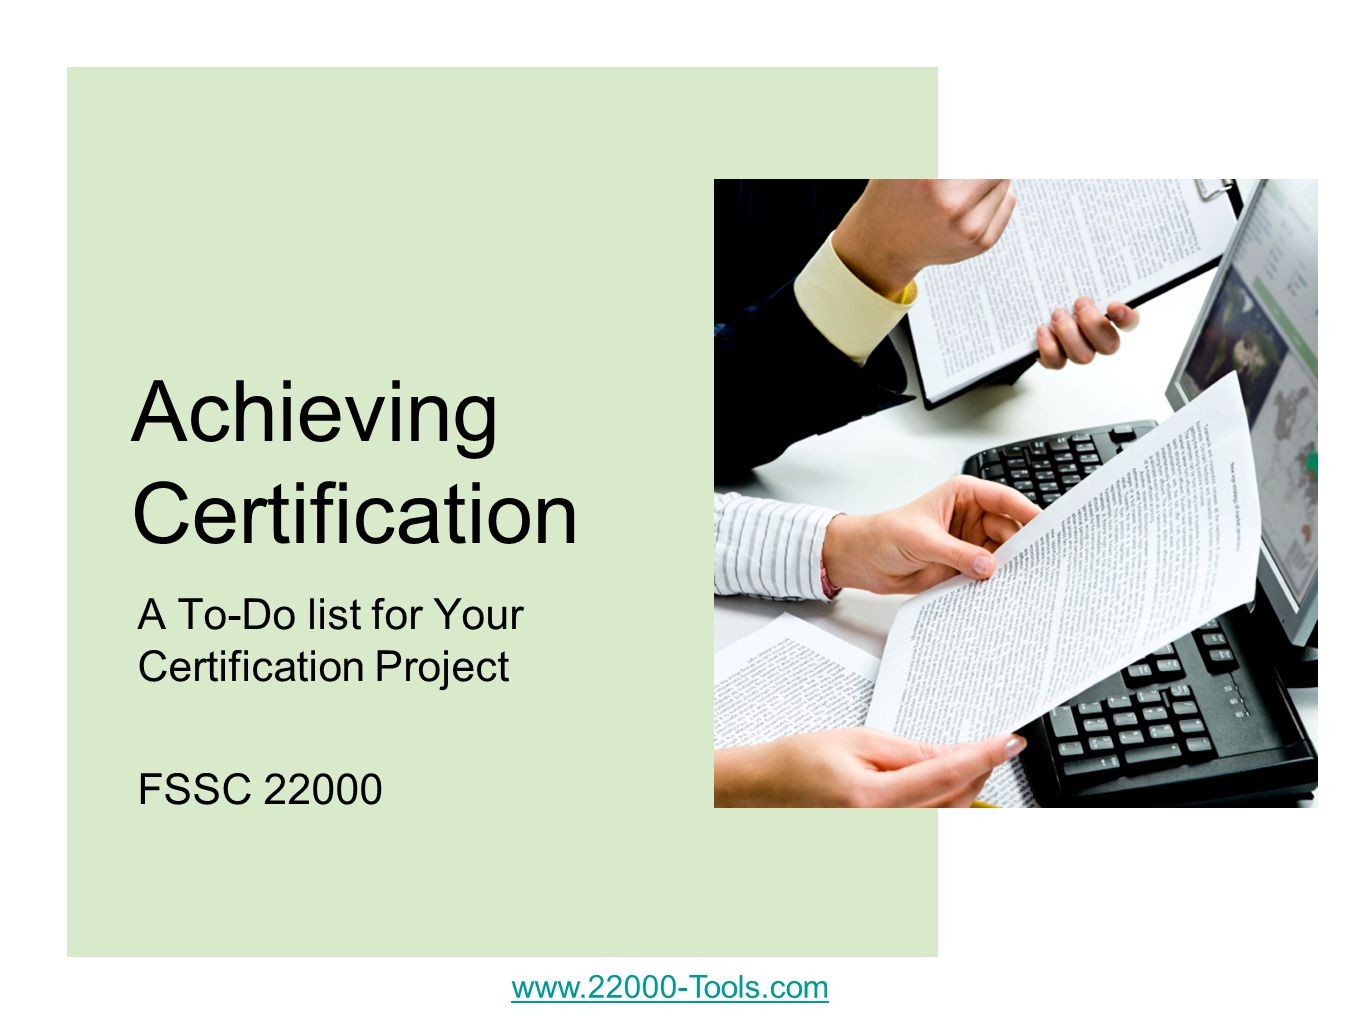 Achieving Certification A To-Do list for Your Certification Project FSSC 22000